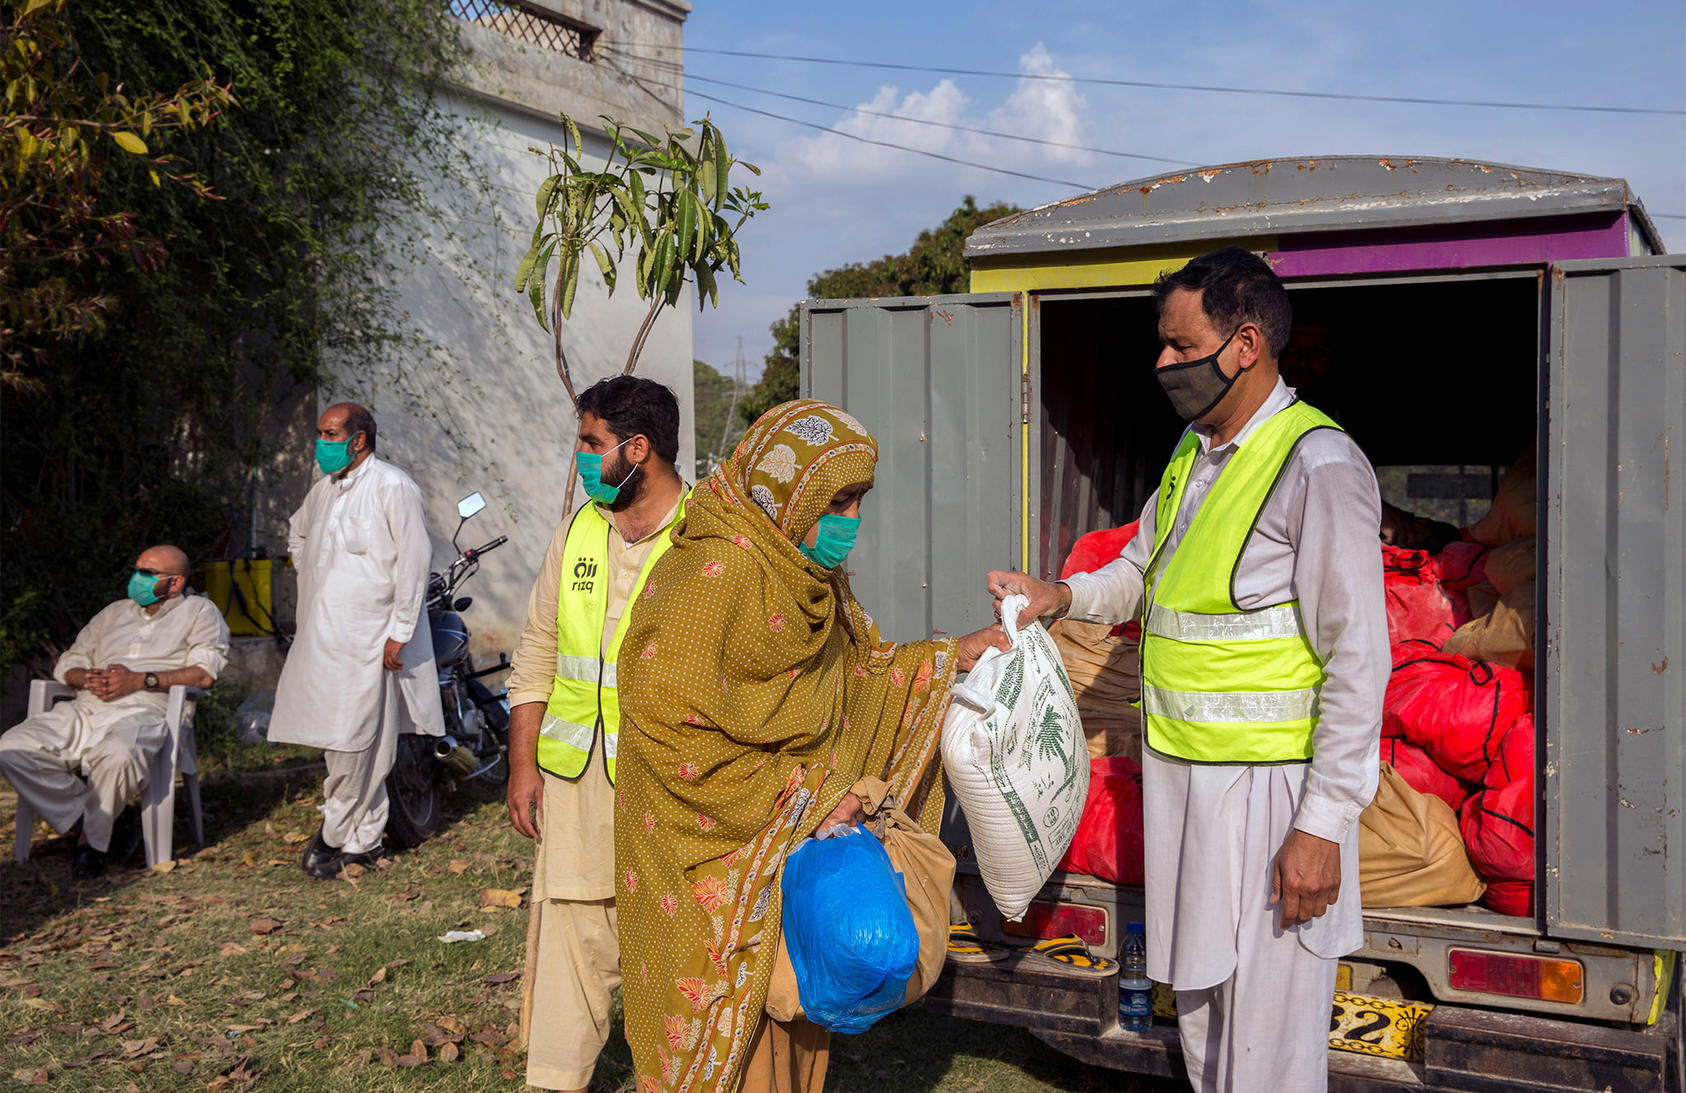 Groceries are delivered ahead of Ramadan in Islamabad, Pakistan, by Rizq, a charity organization, on April 24, 2020. The COVID-19 pandemic has exacerbated Pakistan's economic challenges. (Saiyna Bashir/The New York Times)